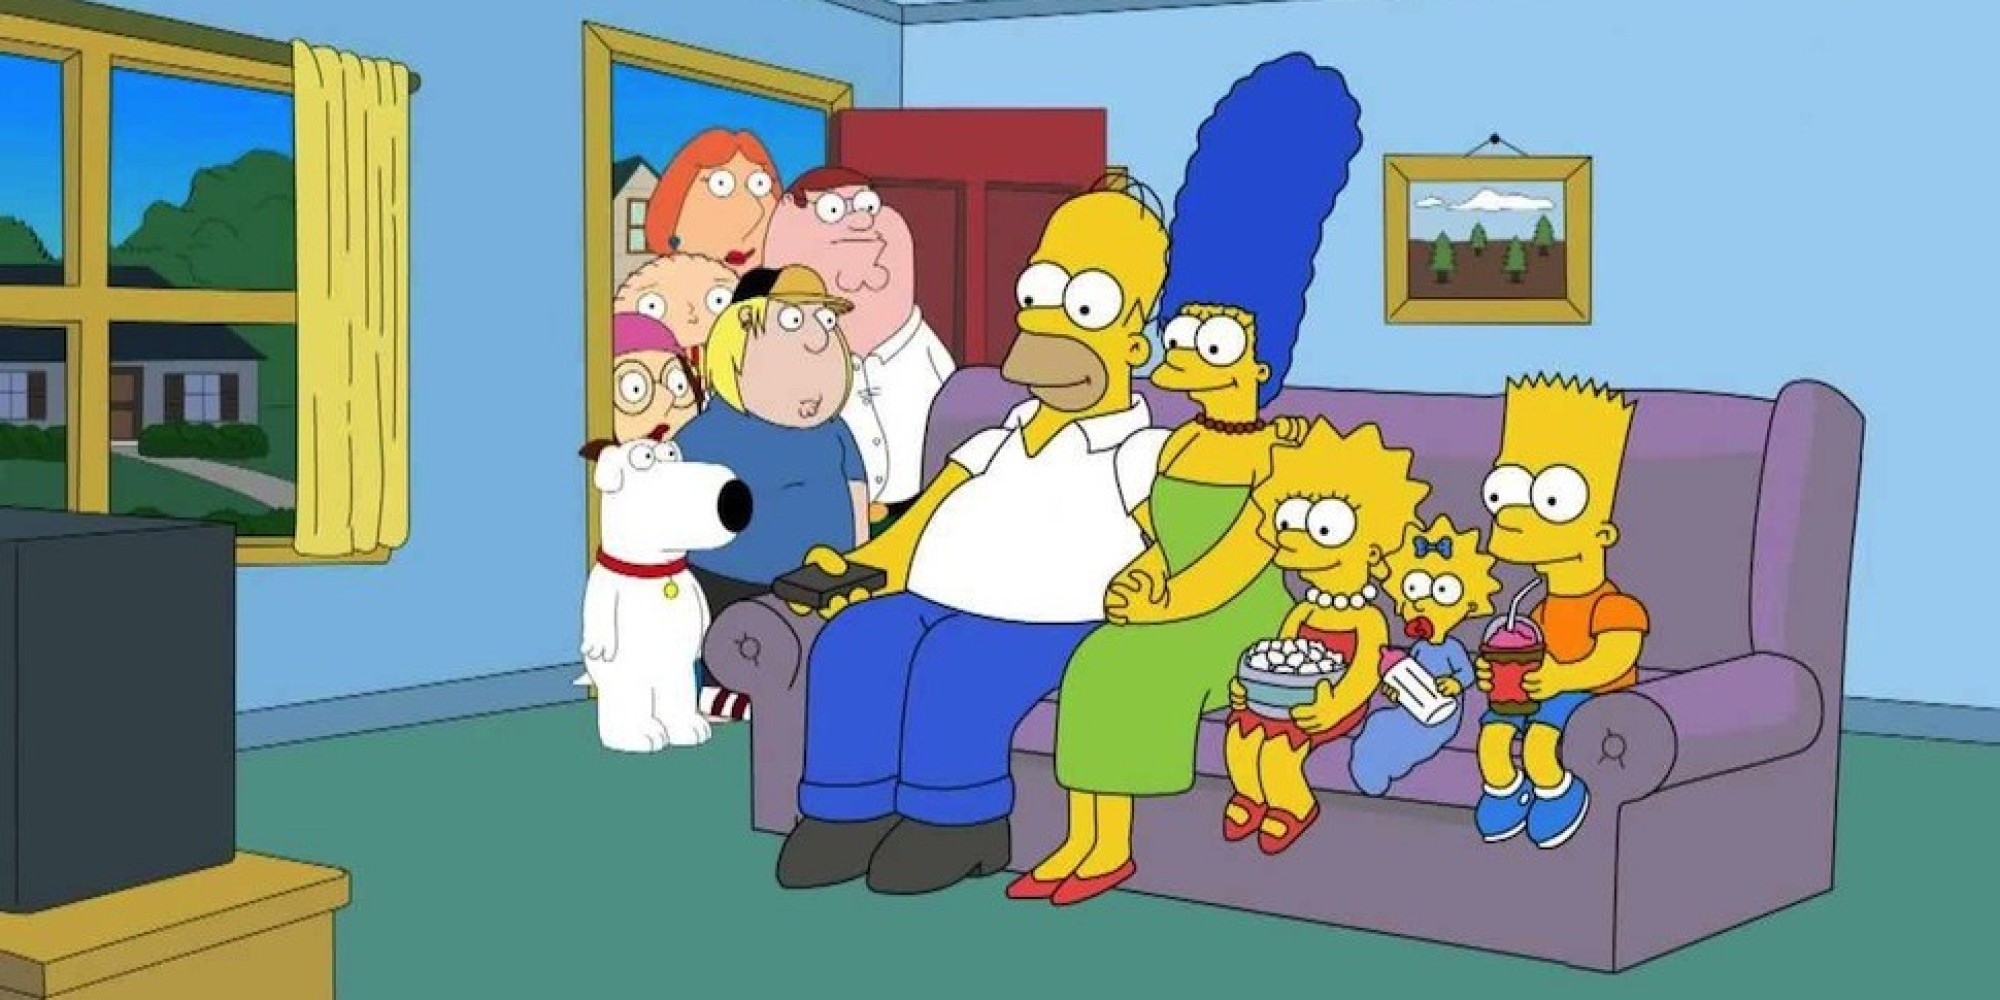 simpsons and family guy meet